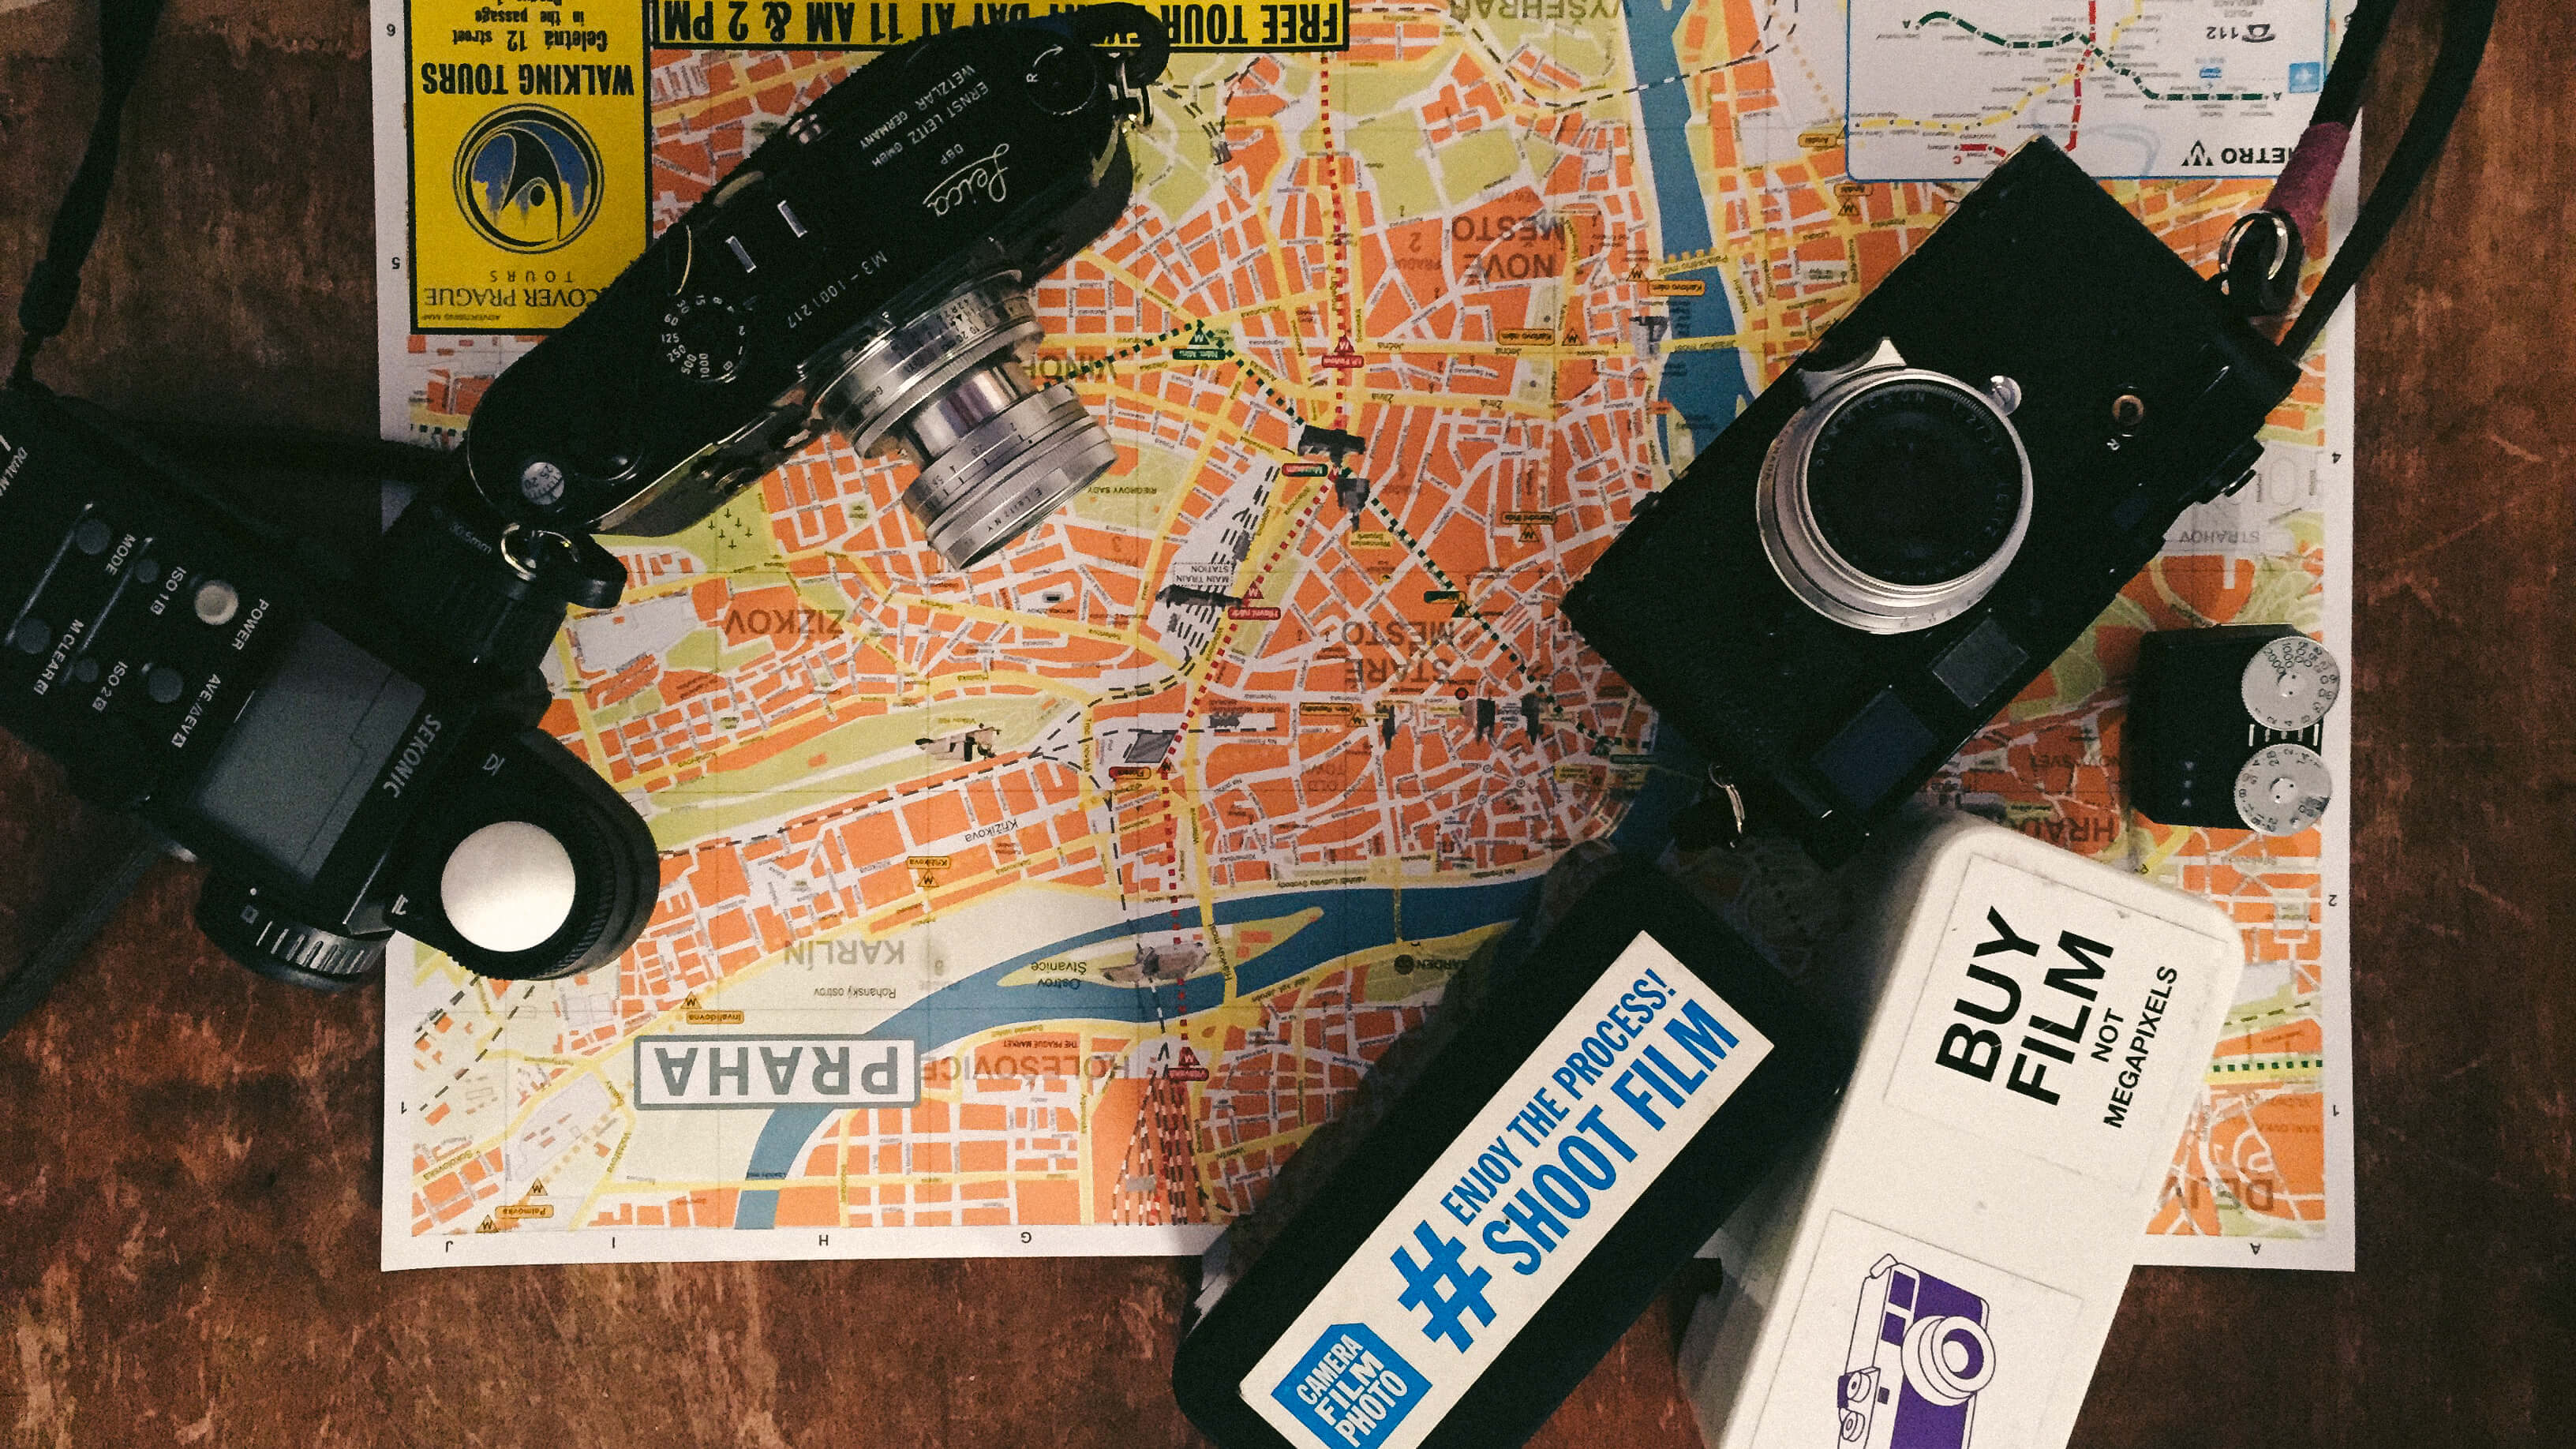 travelling-with-leica-film-cameras-photography-blog-europe-map-shoot-film-begin-journey-personal